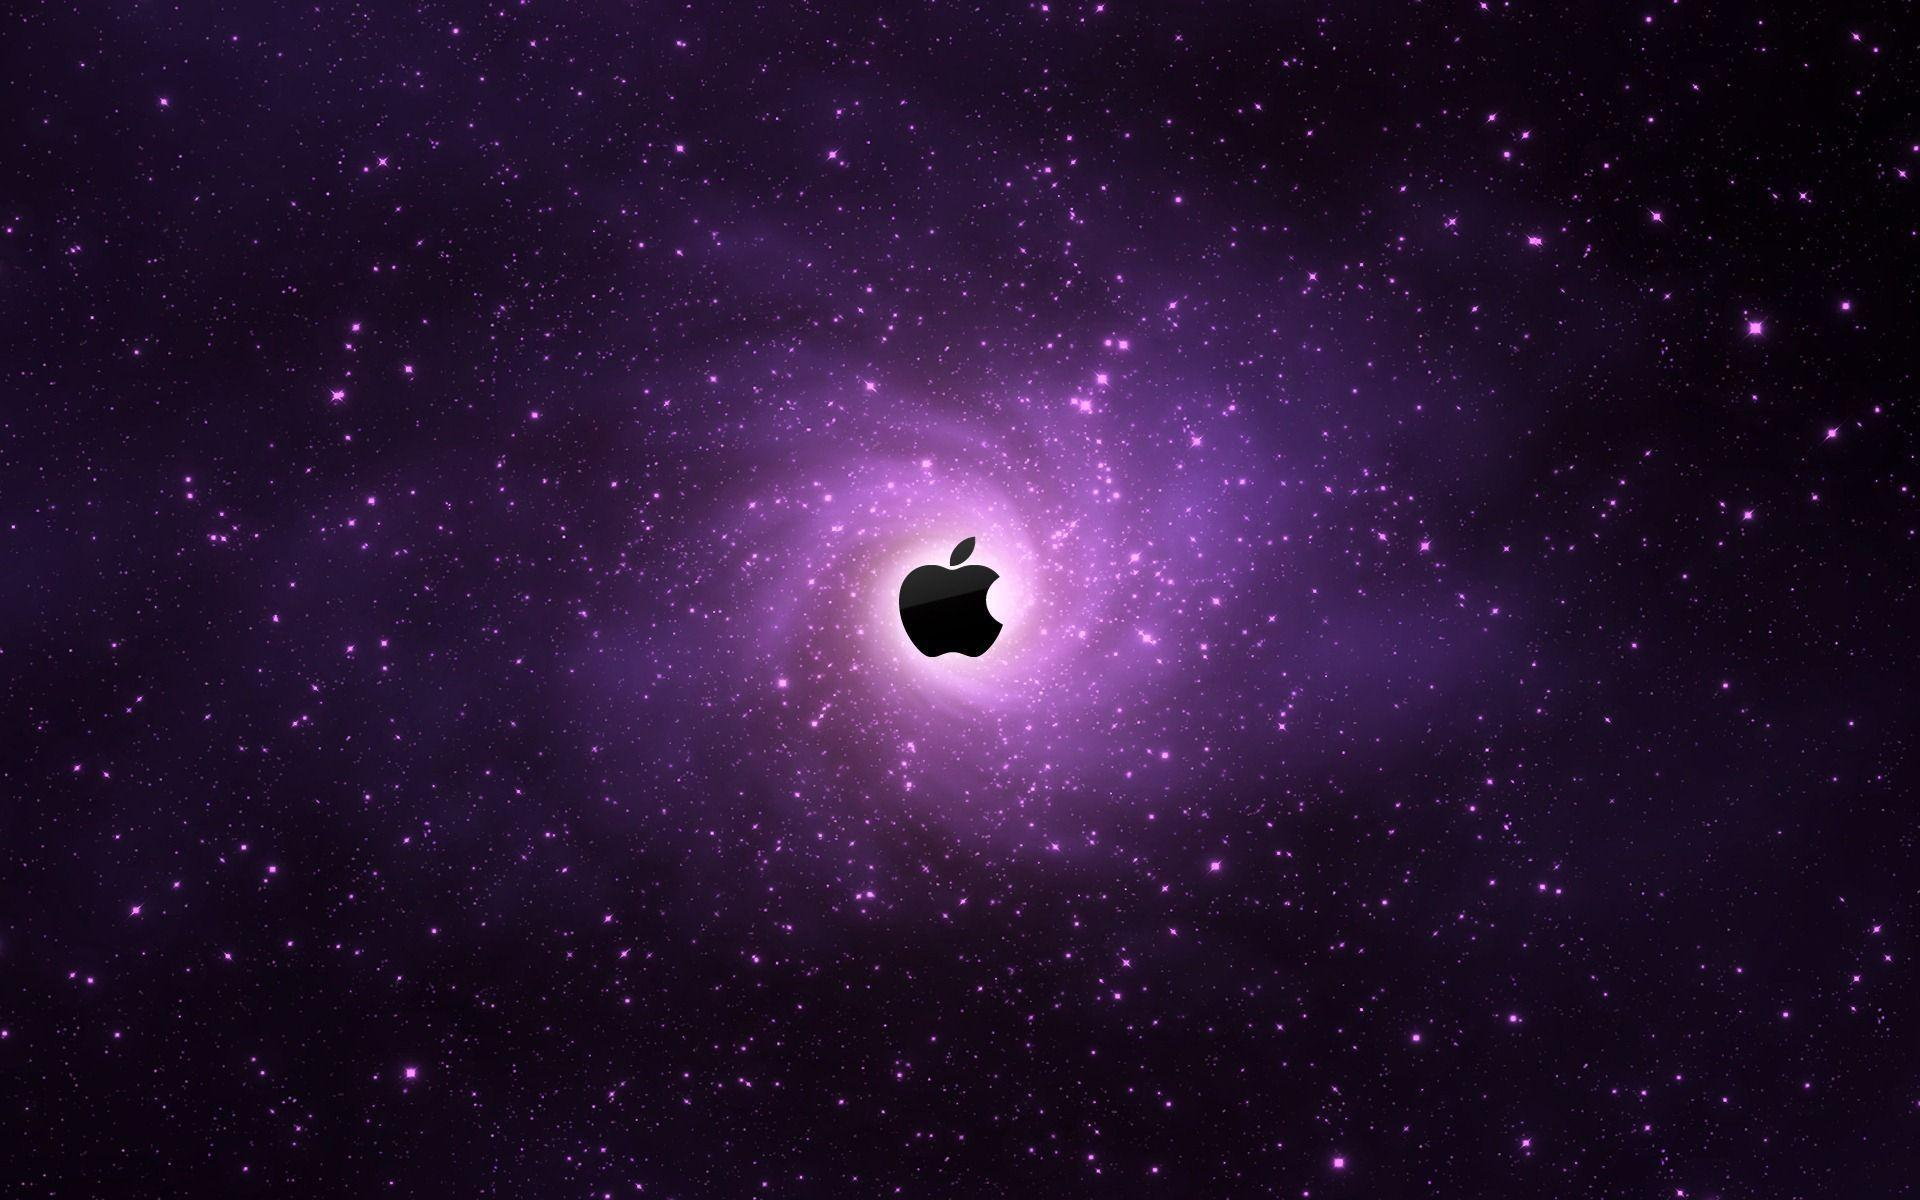 mac hd wallpaper 1080p images pictures becuo